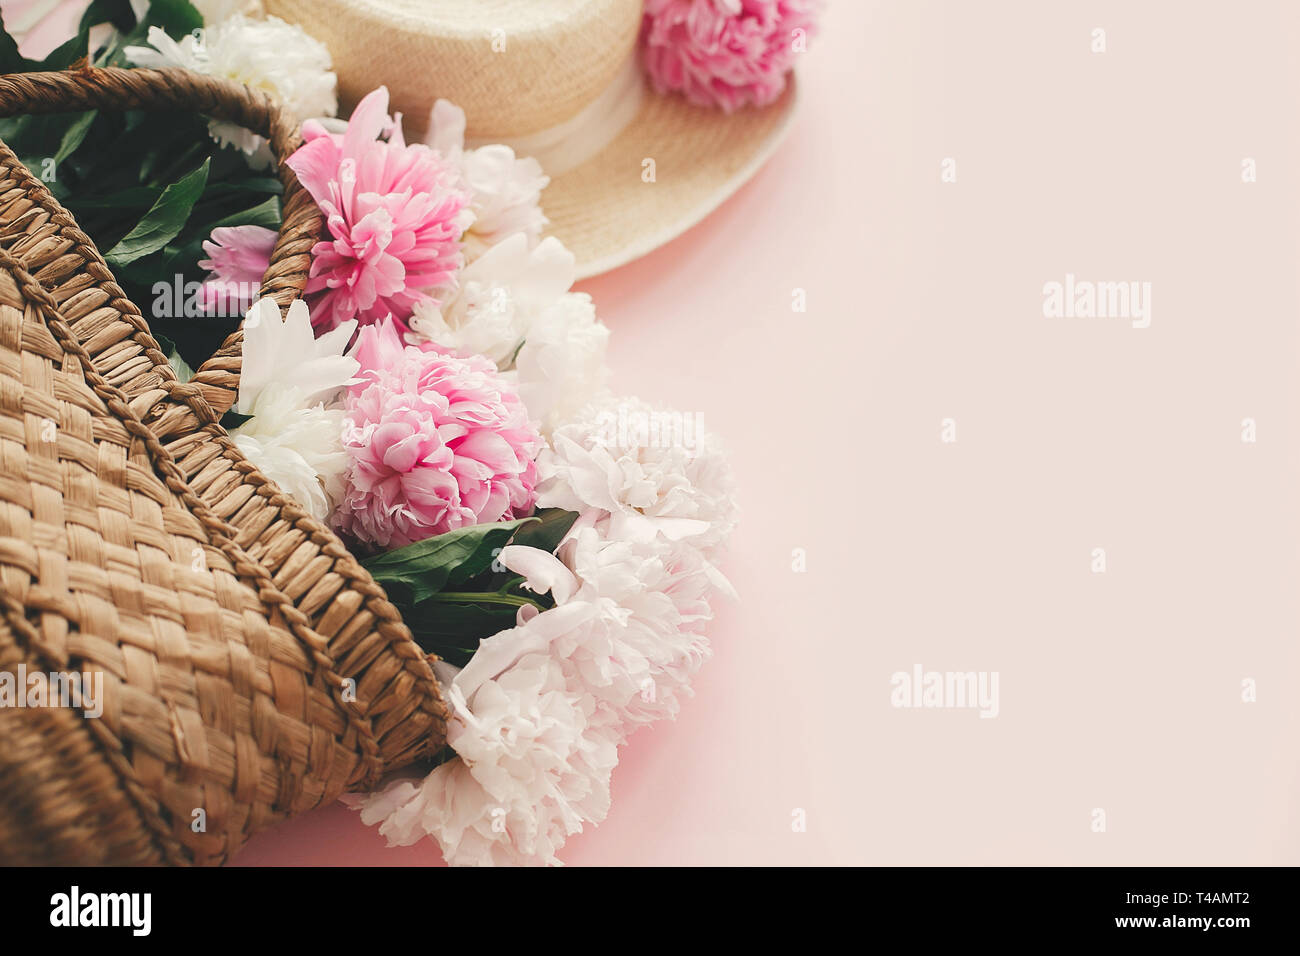 Stylish  straw rustic basket and hat with pink and white peonies on pink paper with space for text. Hello summer. International womens day. Happy moth - Stock Image